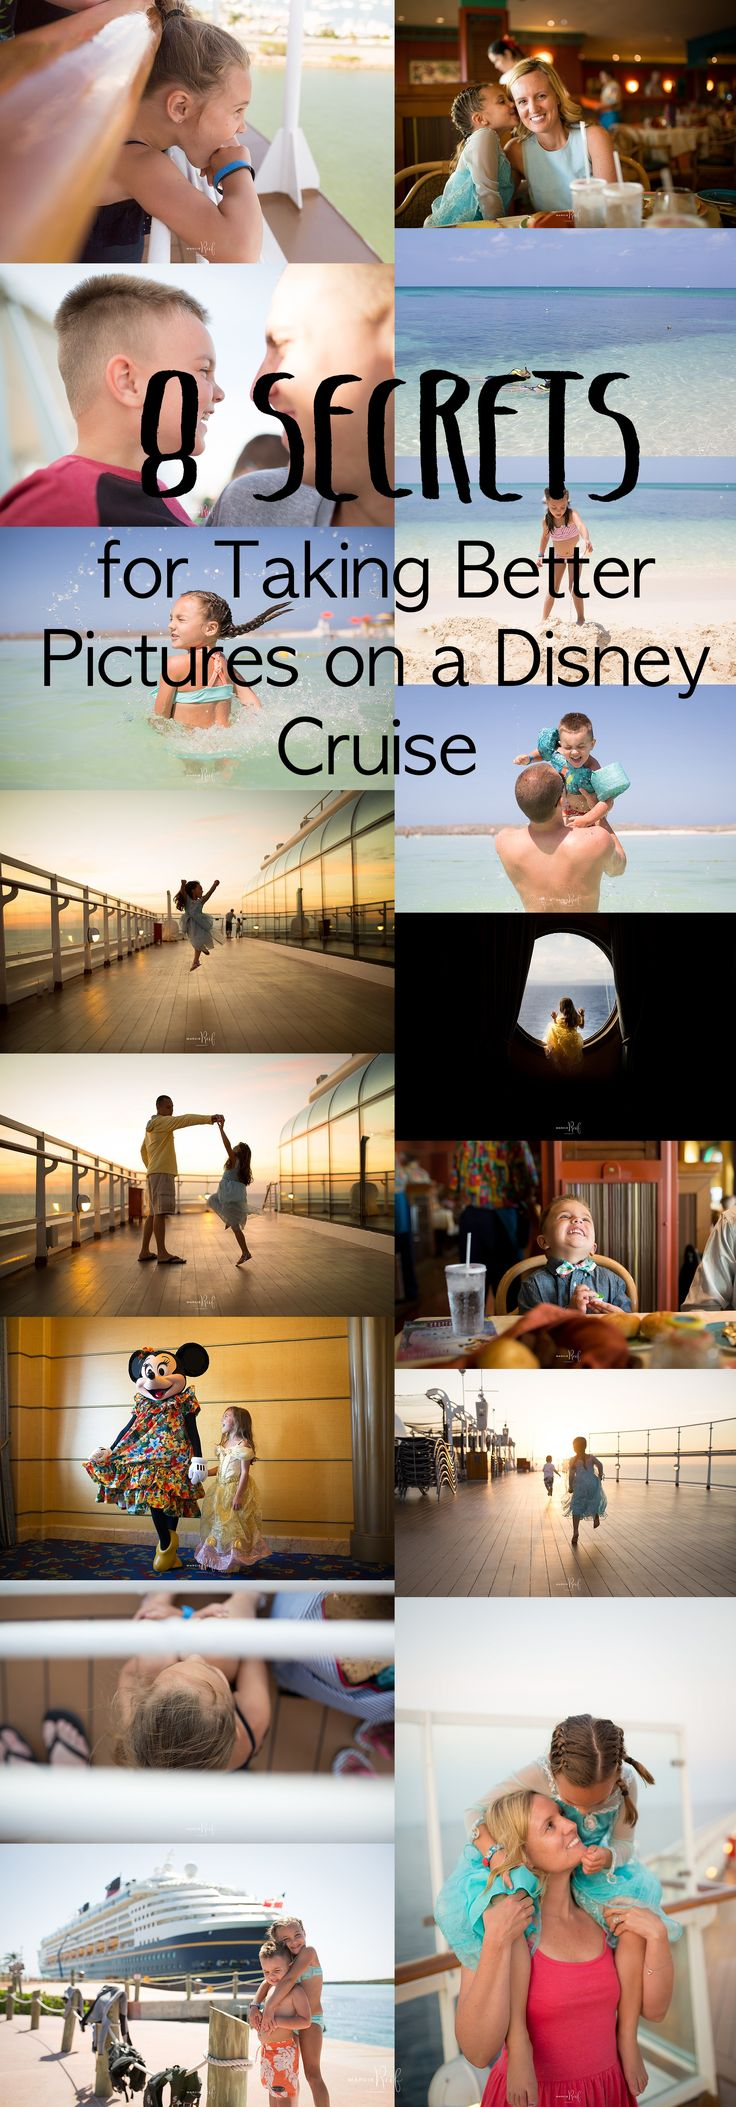 8 Secrets for taking better pictures on your Disney Cruise | Disney Cruise Tips | Disney Cruise Pictures | Disney Cruise Dream | Disney Cruise Wonder | Disney Cruise Magic | Disney Cruise Fantasy | Disney Cruise Ideas | Disney Cruise Ships | Disney Cruise Pictures